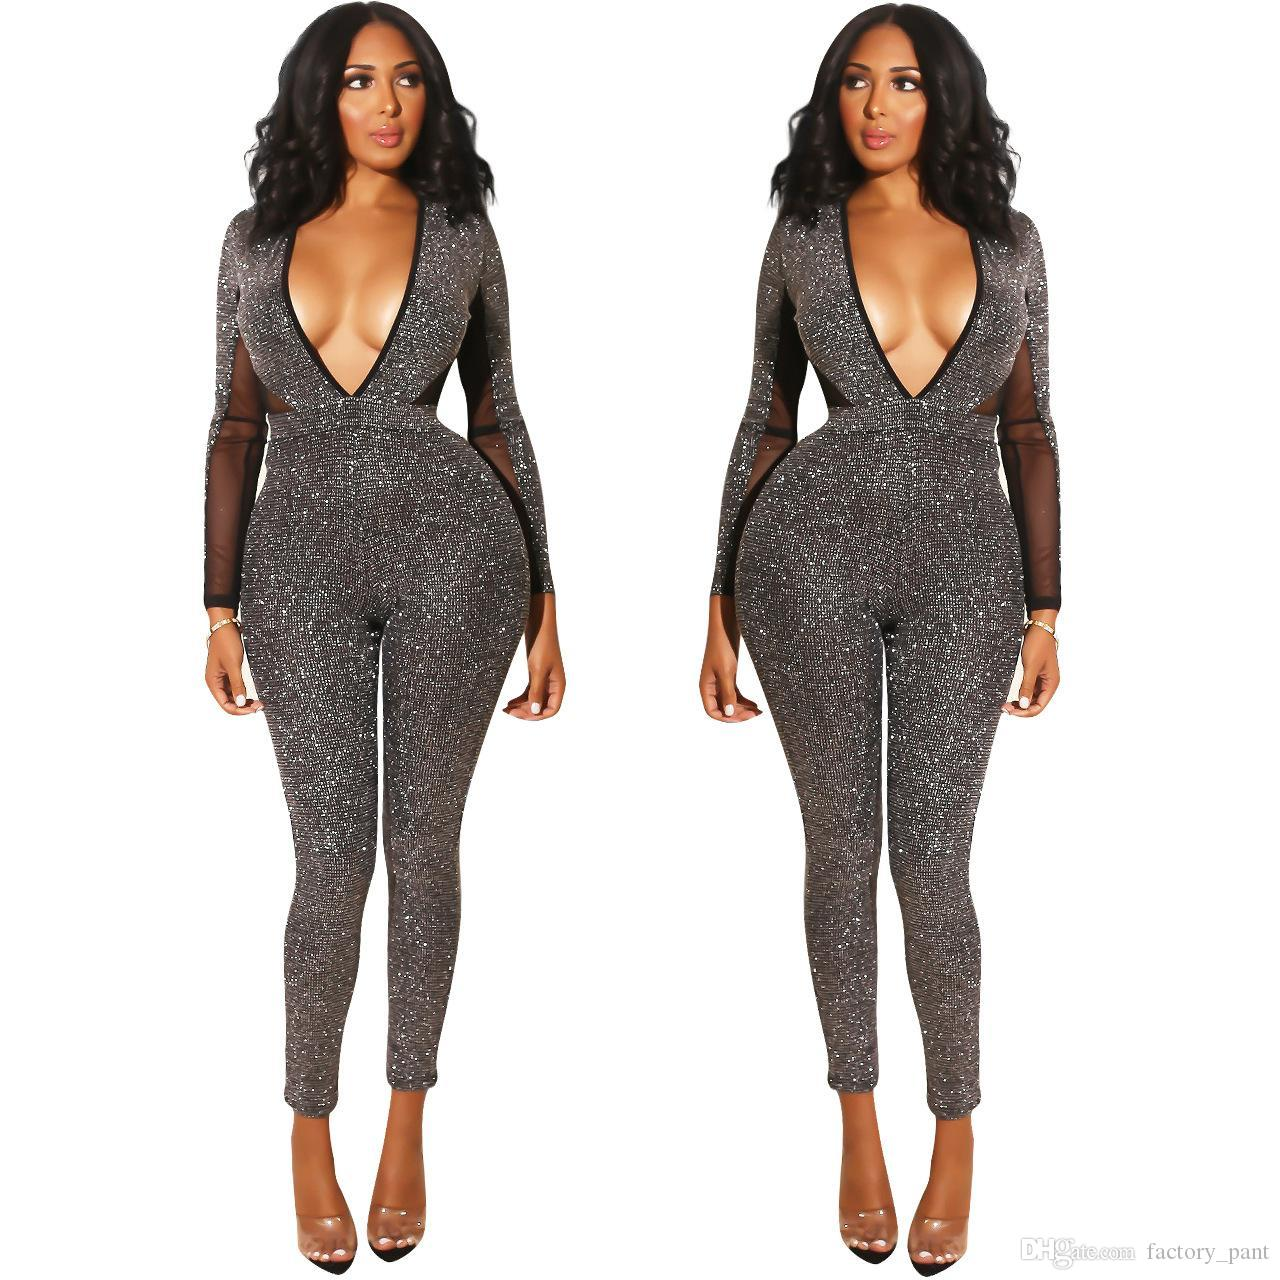 Women's Clothing Backless Playsuit Party Jumpsuit Fashion Women Body Femme Jumpsuit Playsuits Bodysuit Women Sexy Jumpsuit Women Selling Well All Over The World